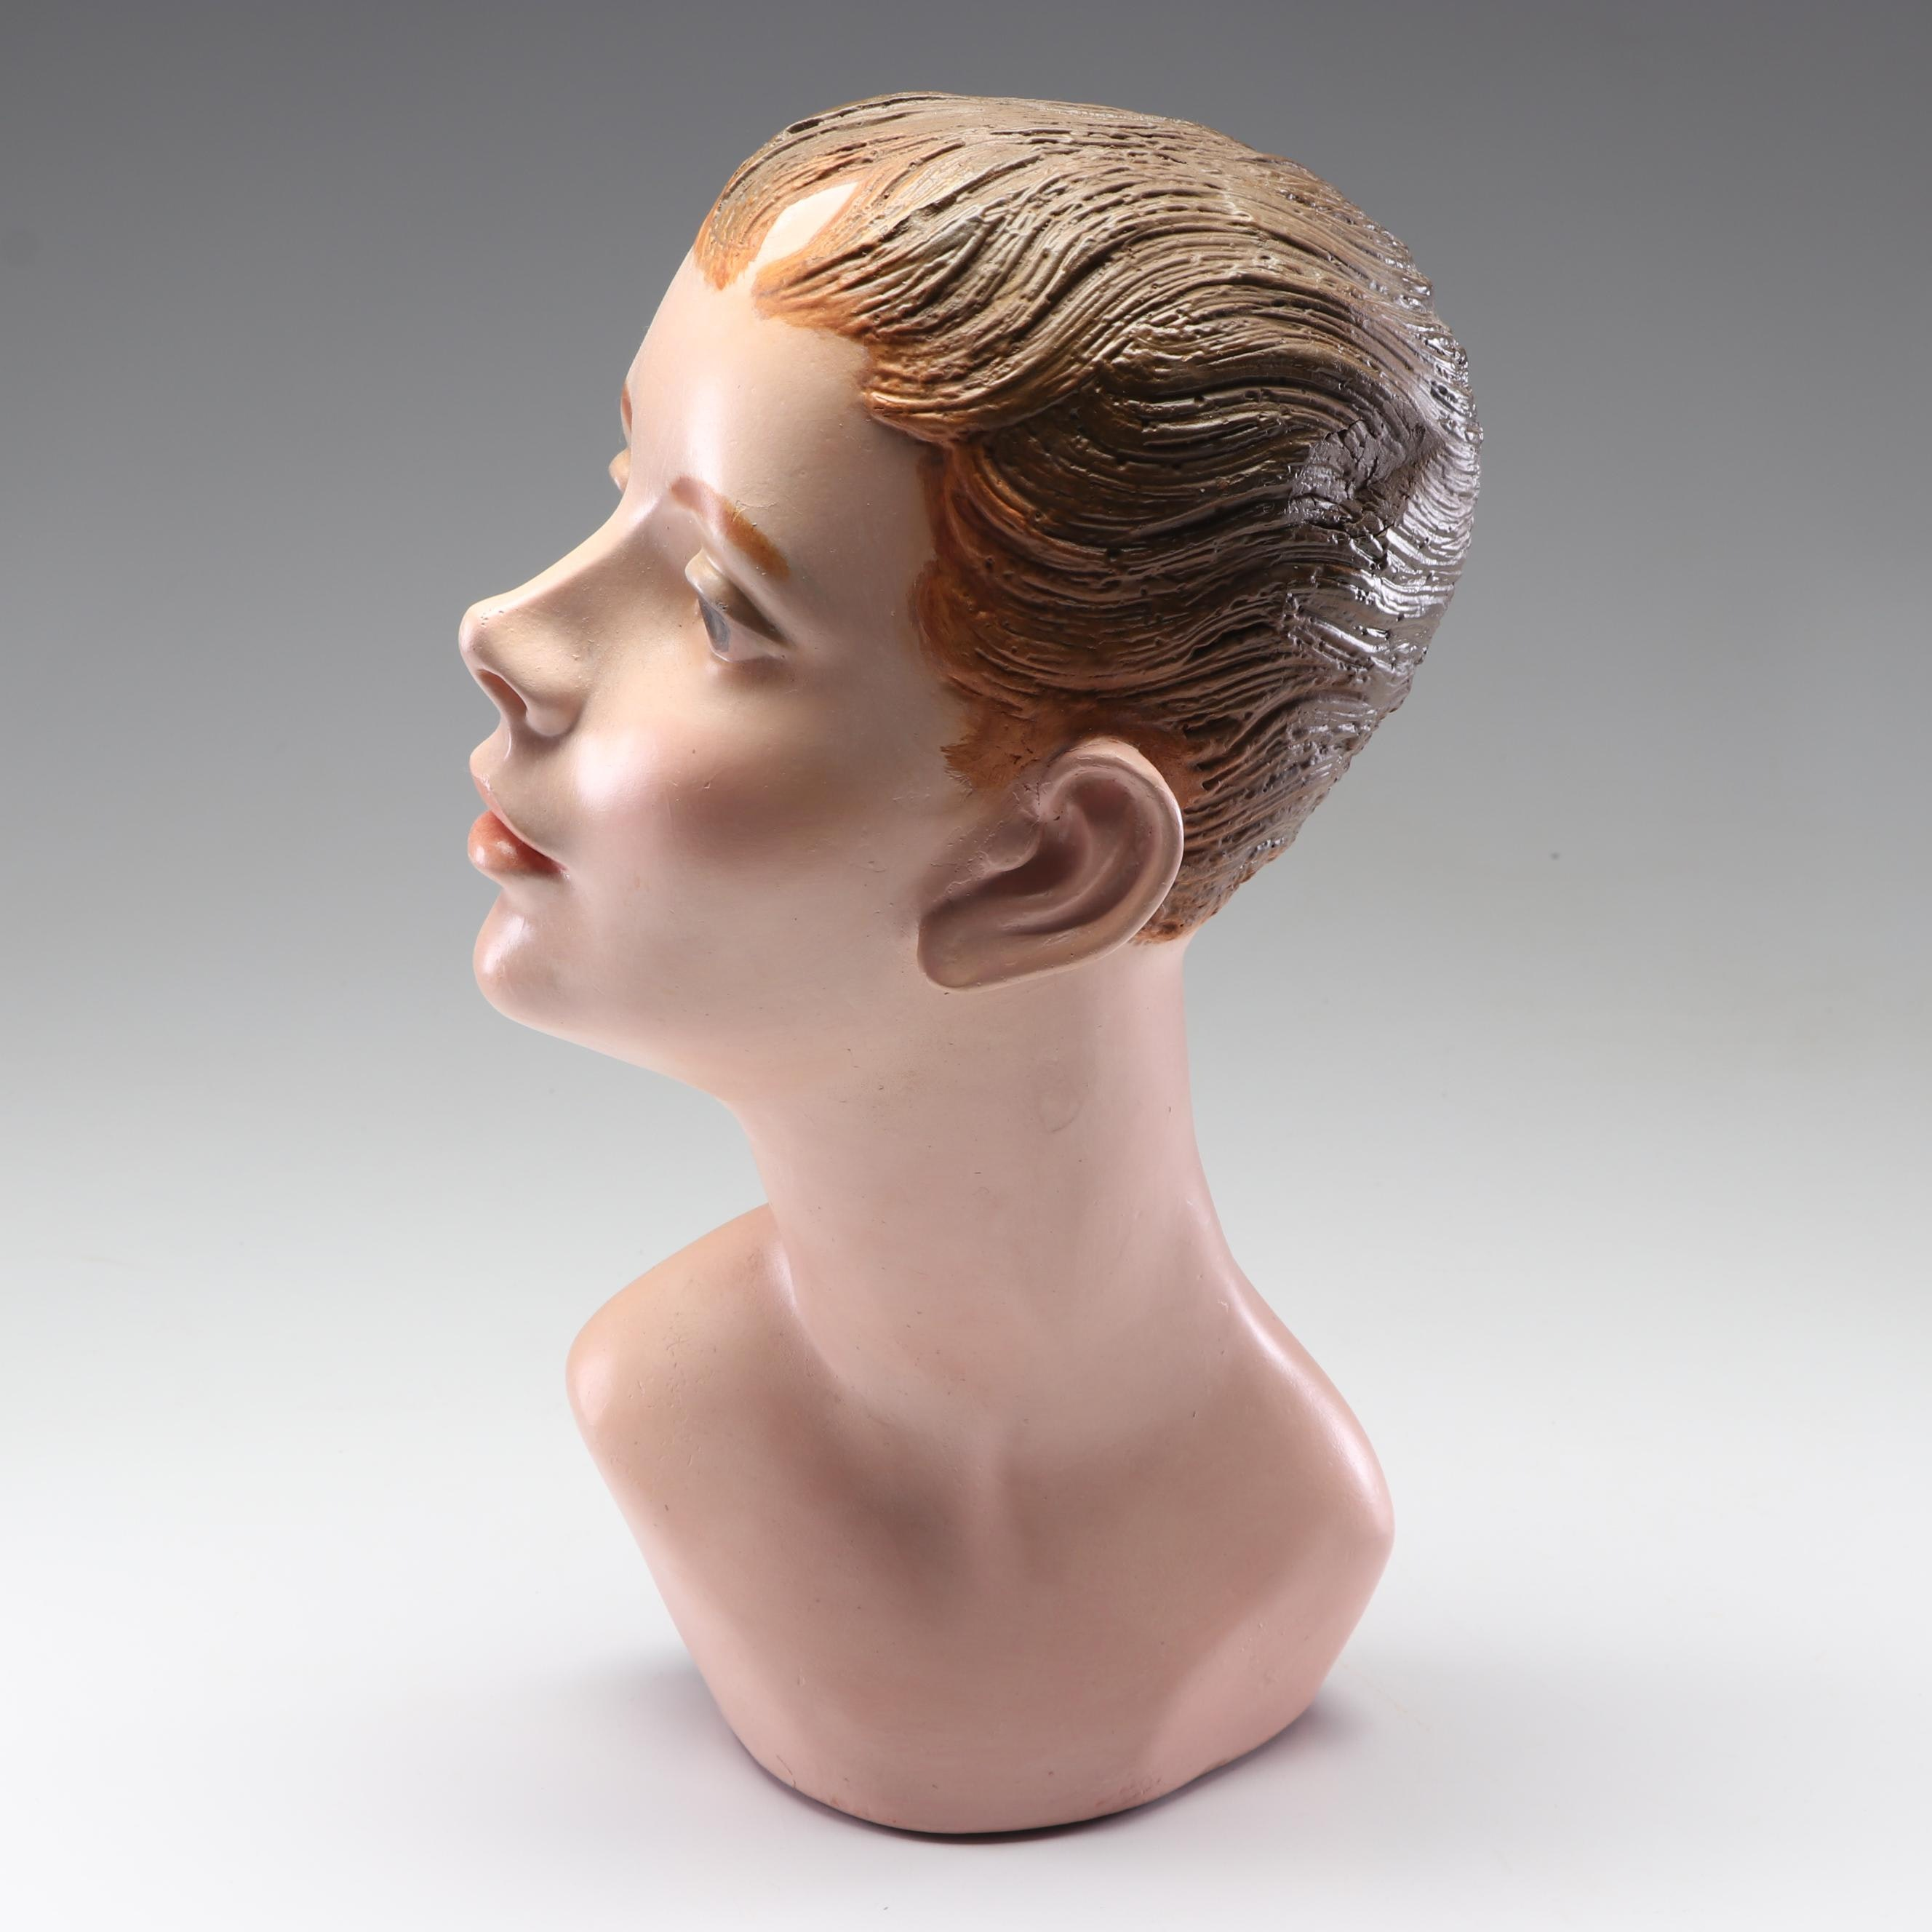 Plaster Female Mannequin Head, Mid-20th Century